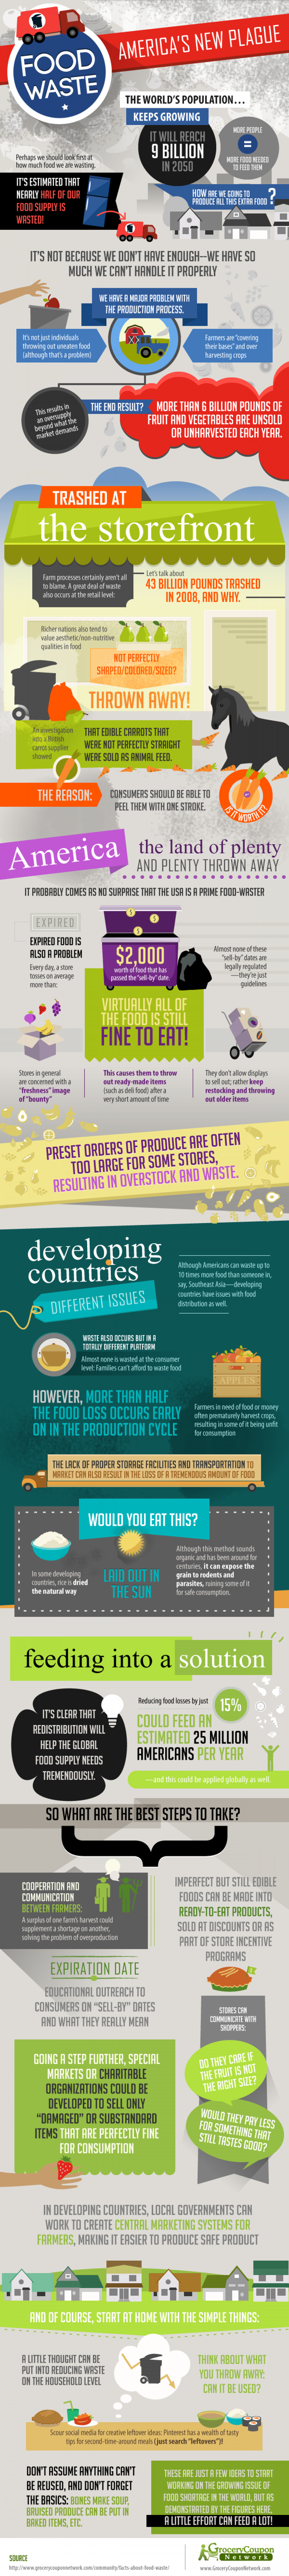 Food Wast - America's New Plague Infographic